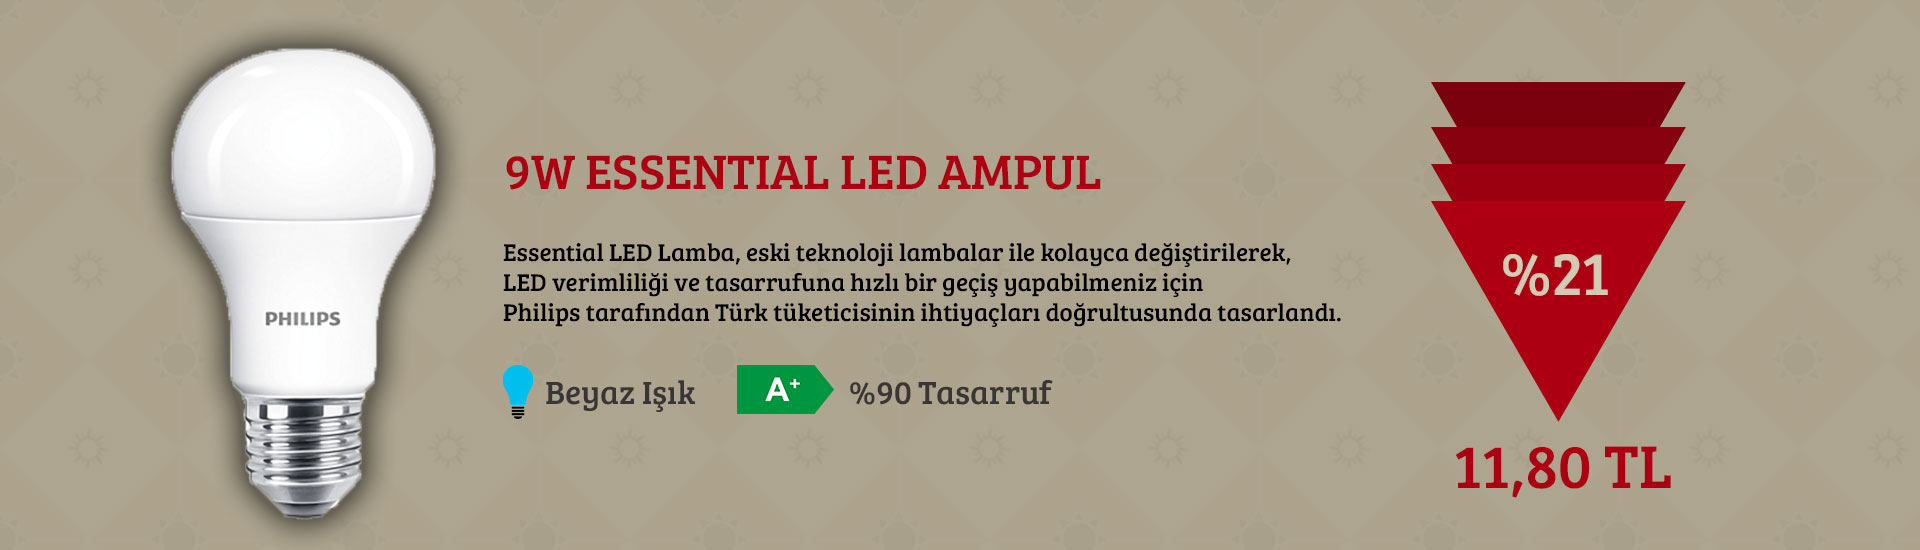 Philips 9W Led Essentials Ampul